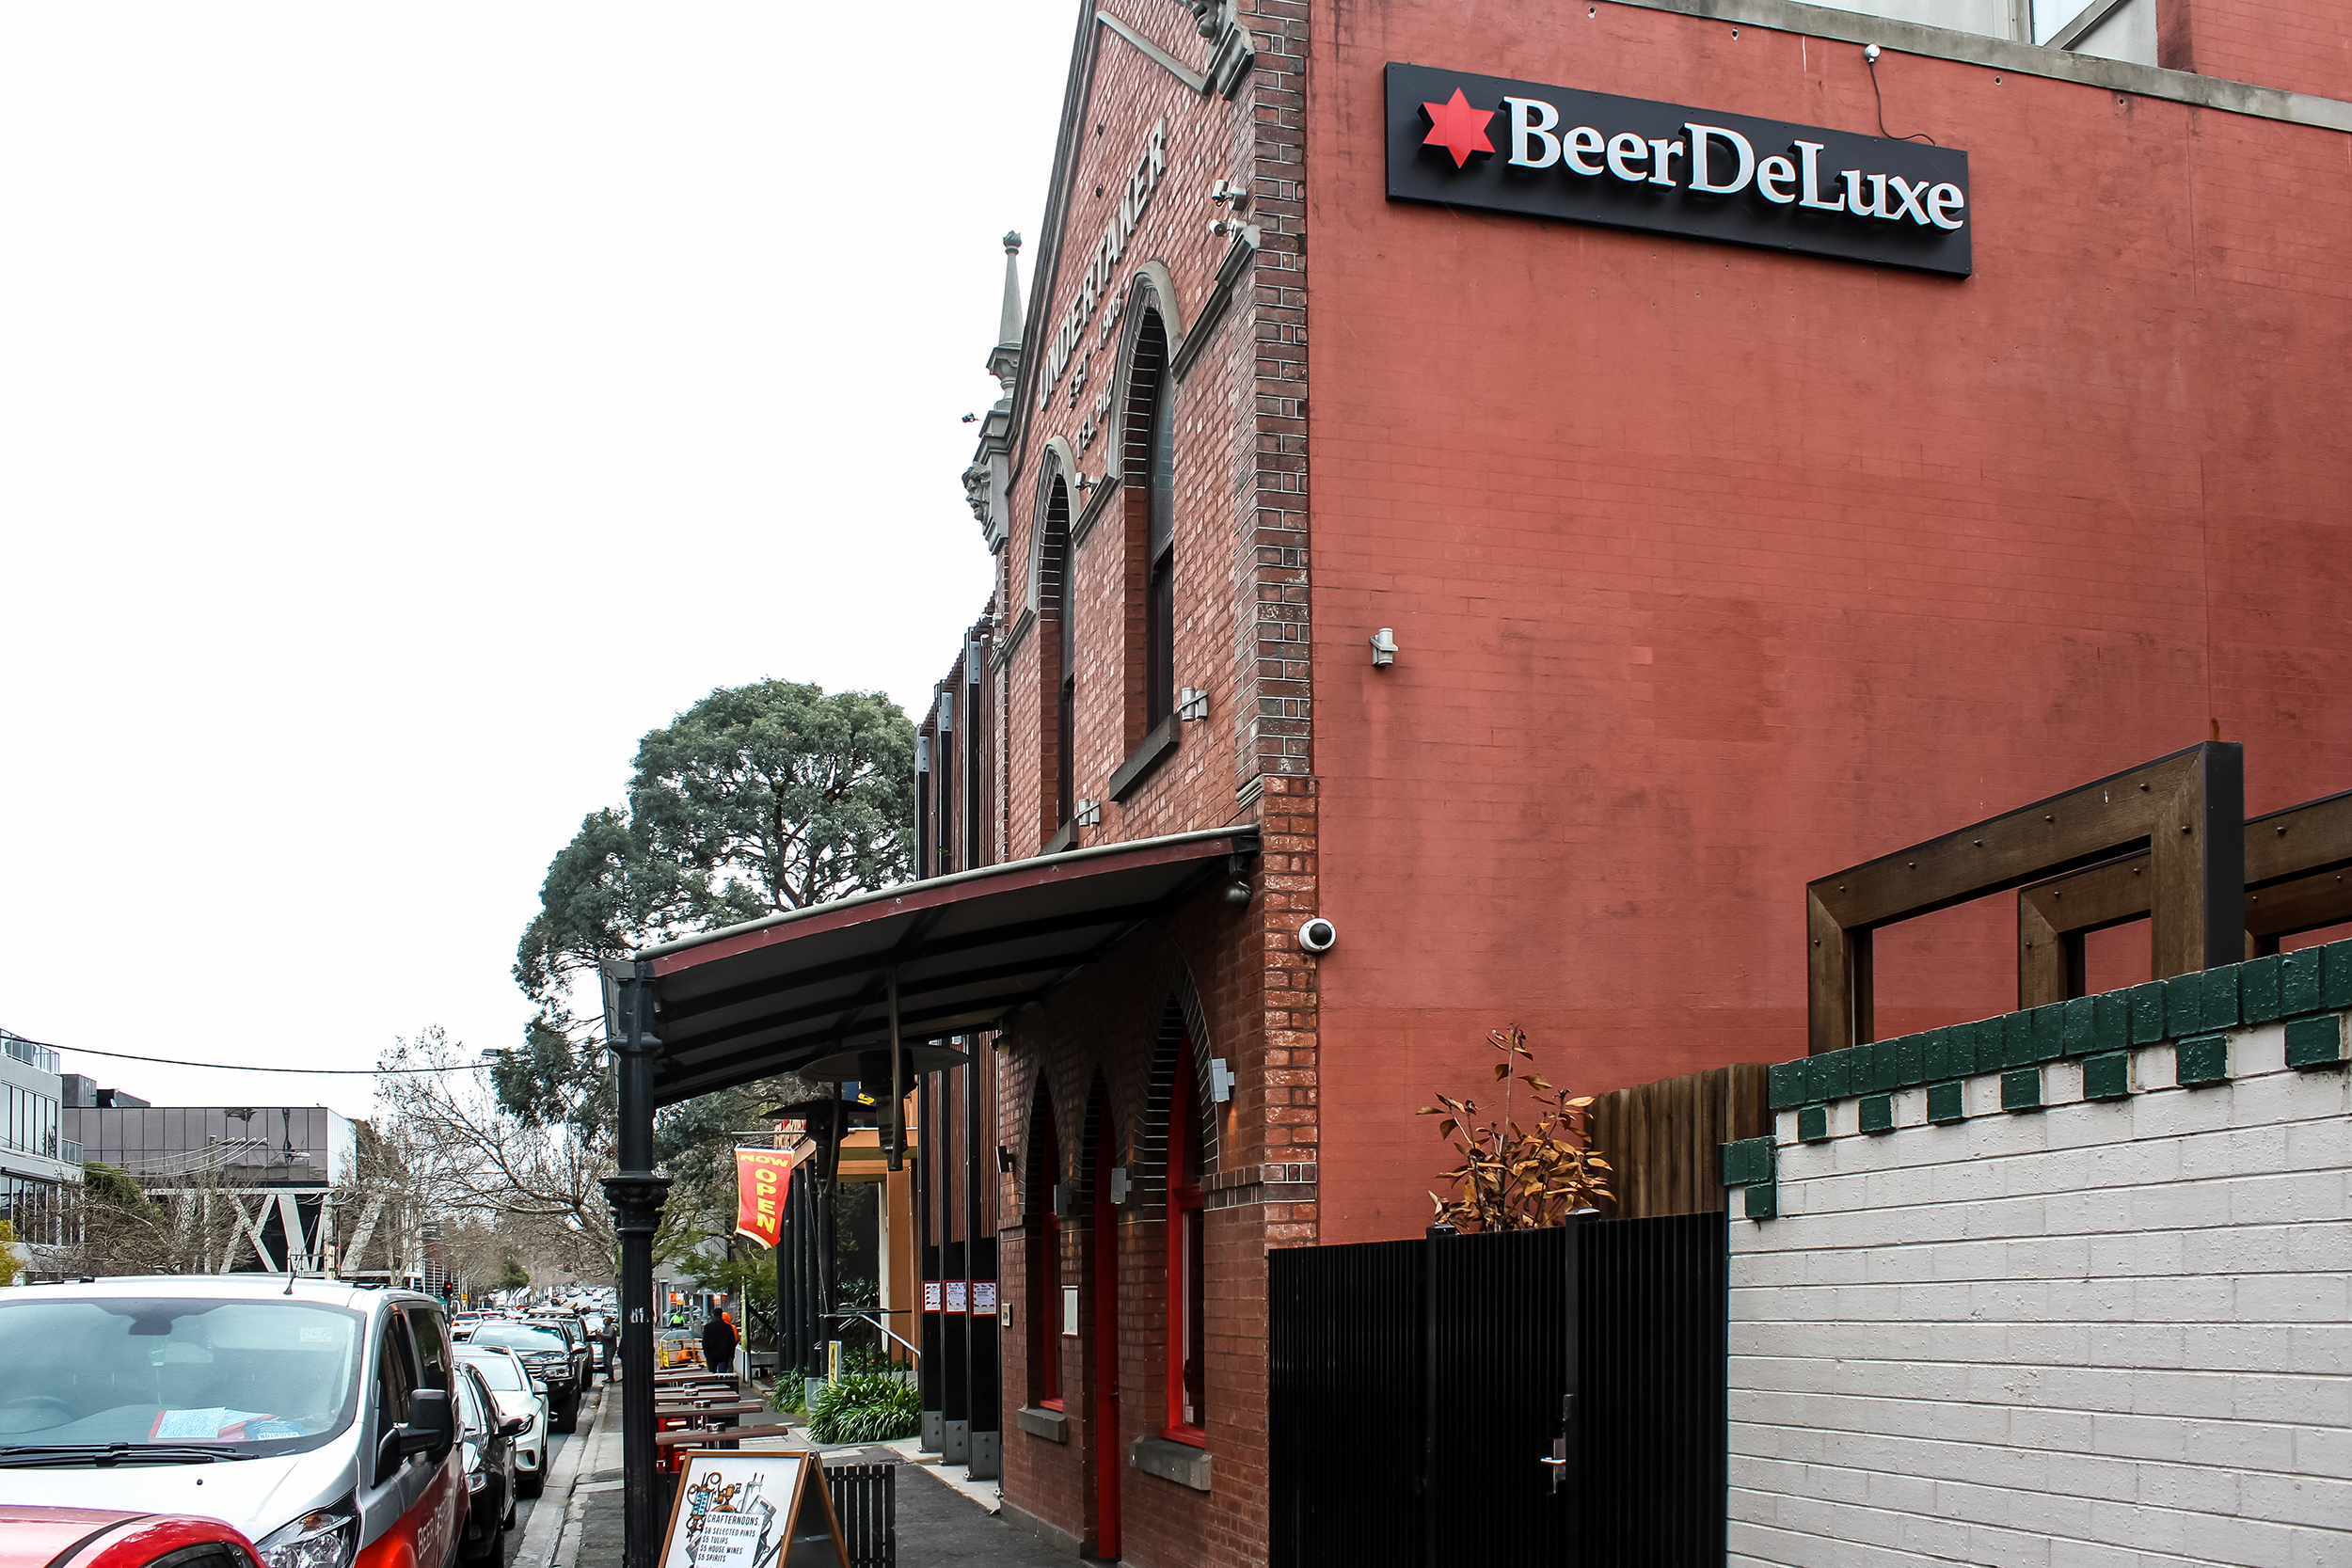 Name : BeerDeLuxe - Hawthorn, VIC